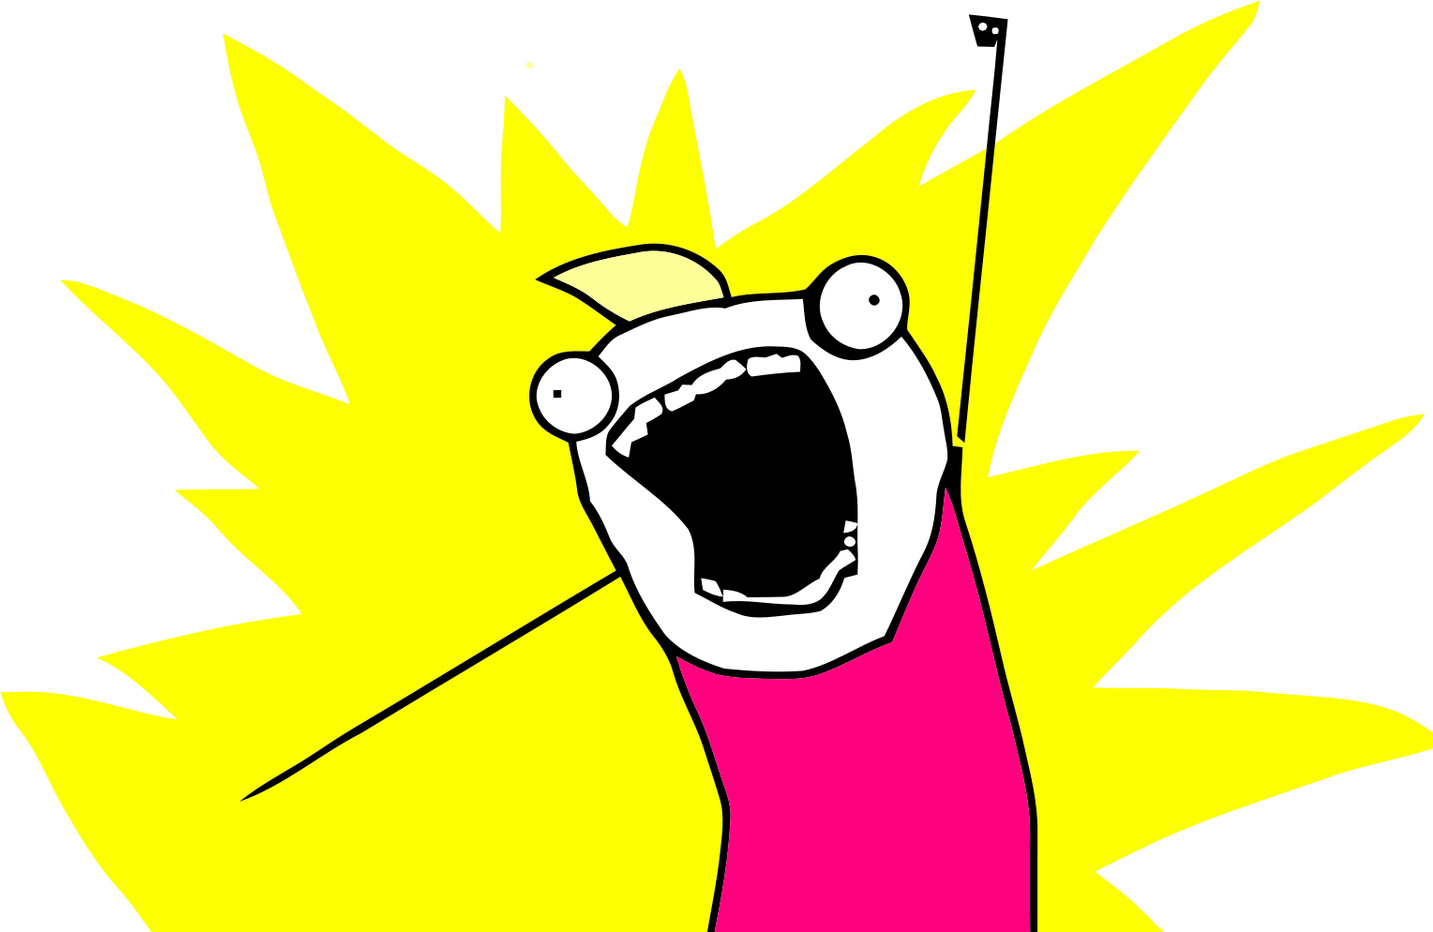 Allie Brosh's MS paint self-portrait in which she's raising one fist in the air in celebratory determination.